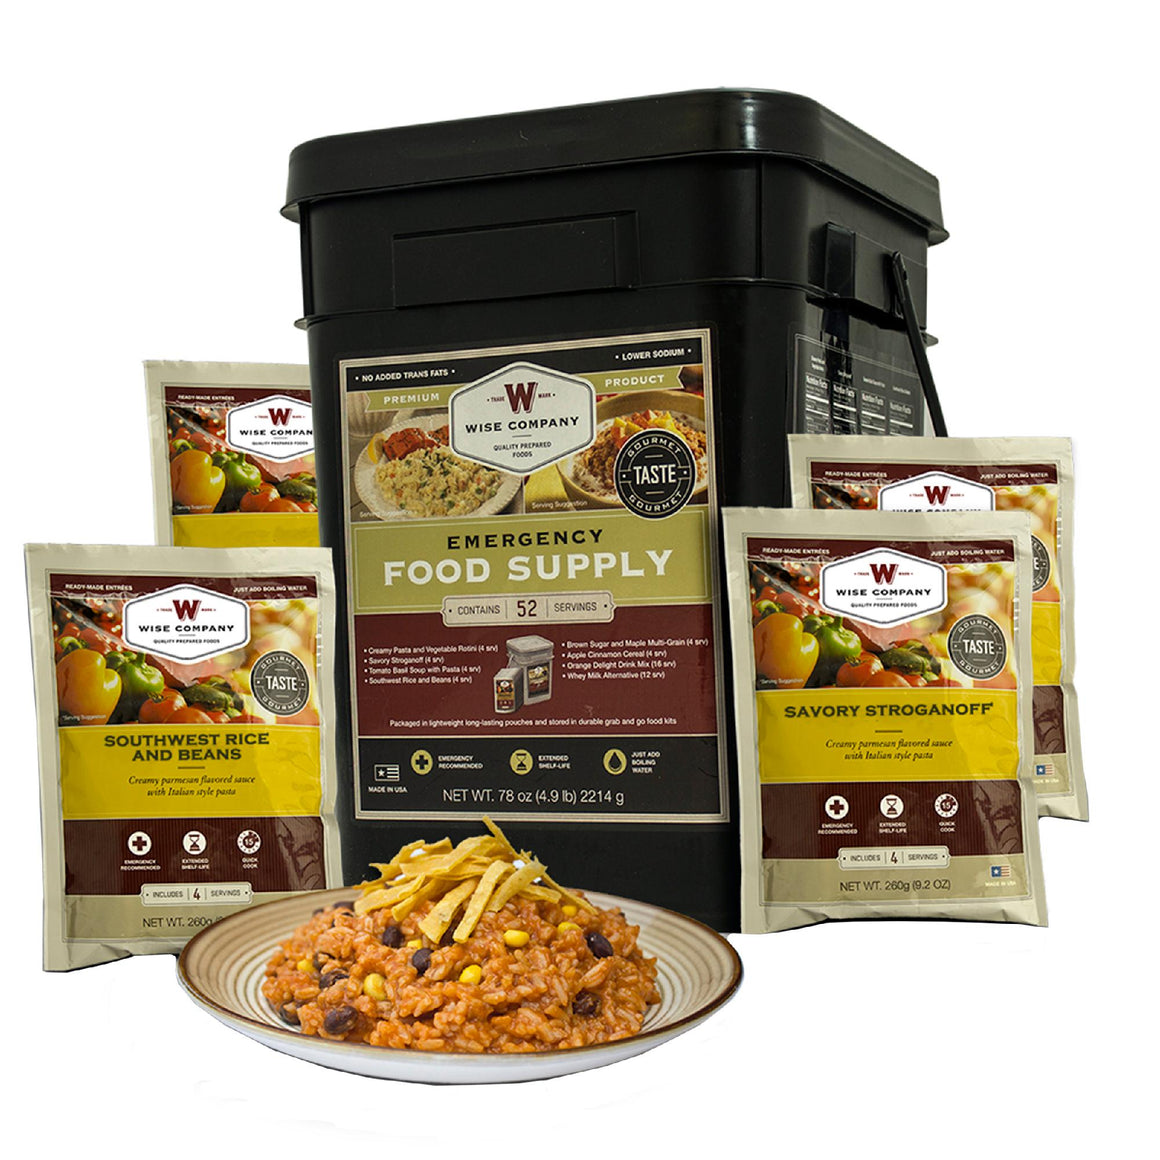 Ultimate Emergency Kit - Prepper Pack Meal Kit